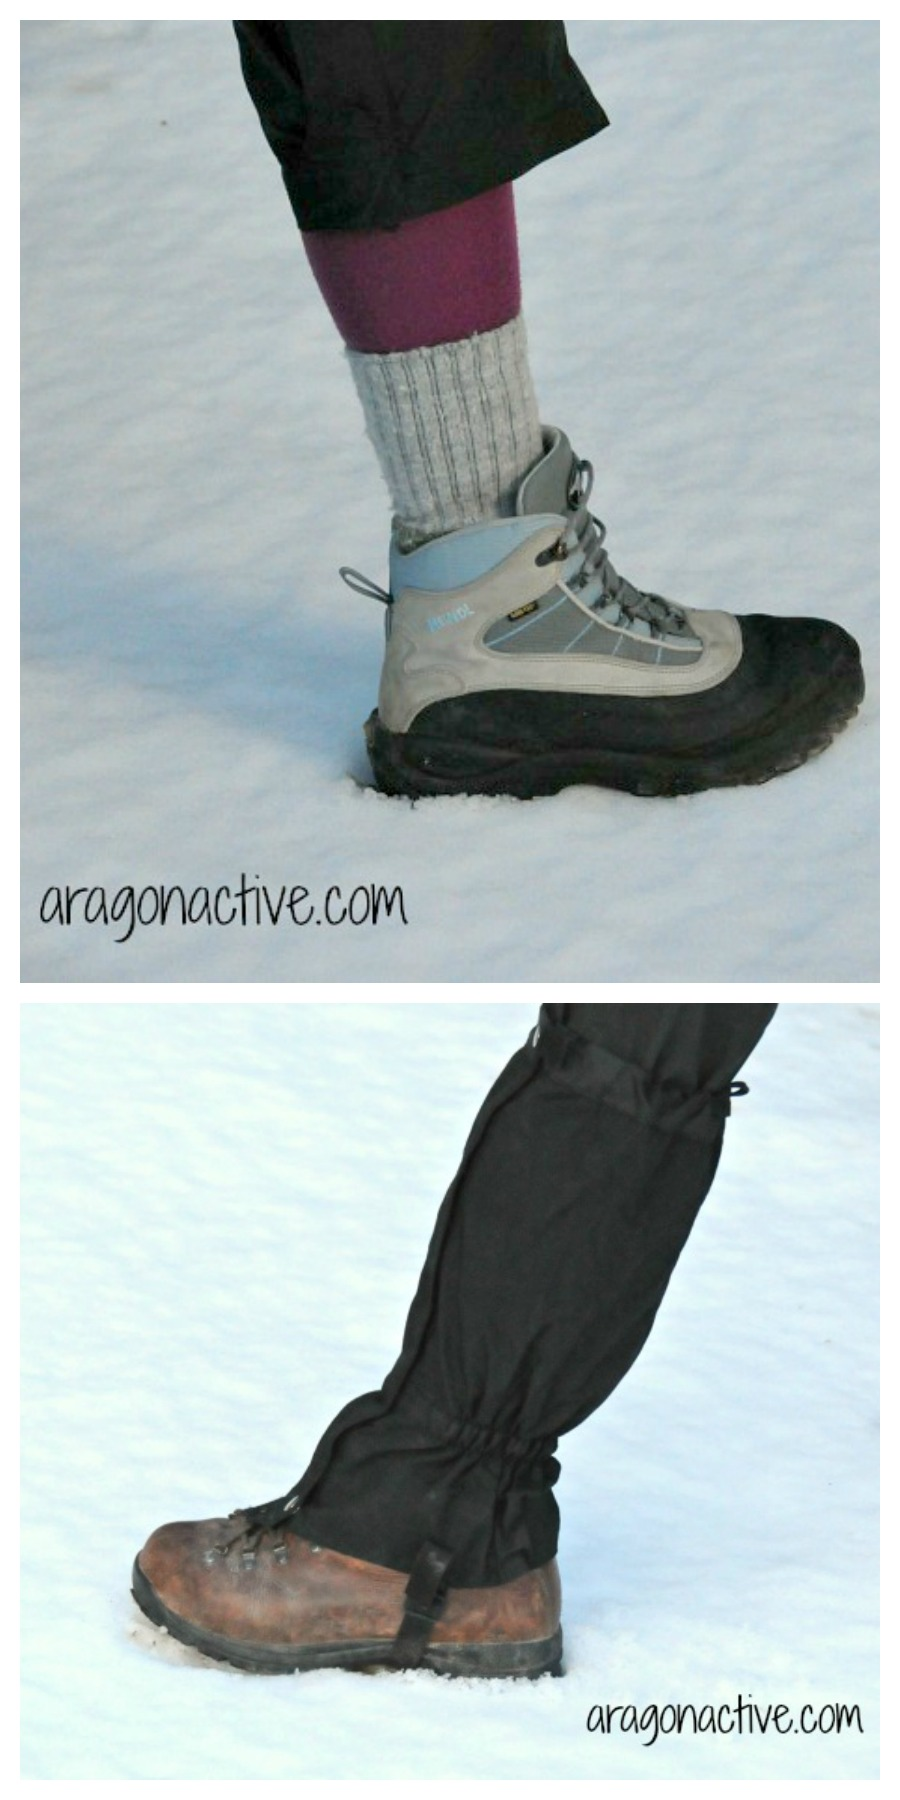 Photo showing two boots for snowshoeing on What to Wear Snowshoeing